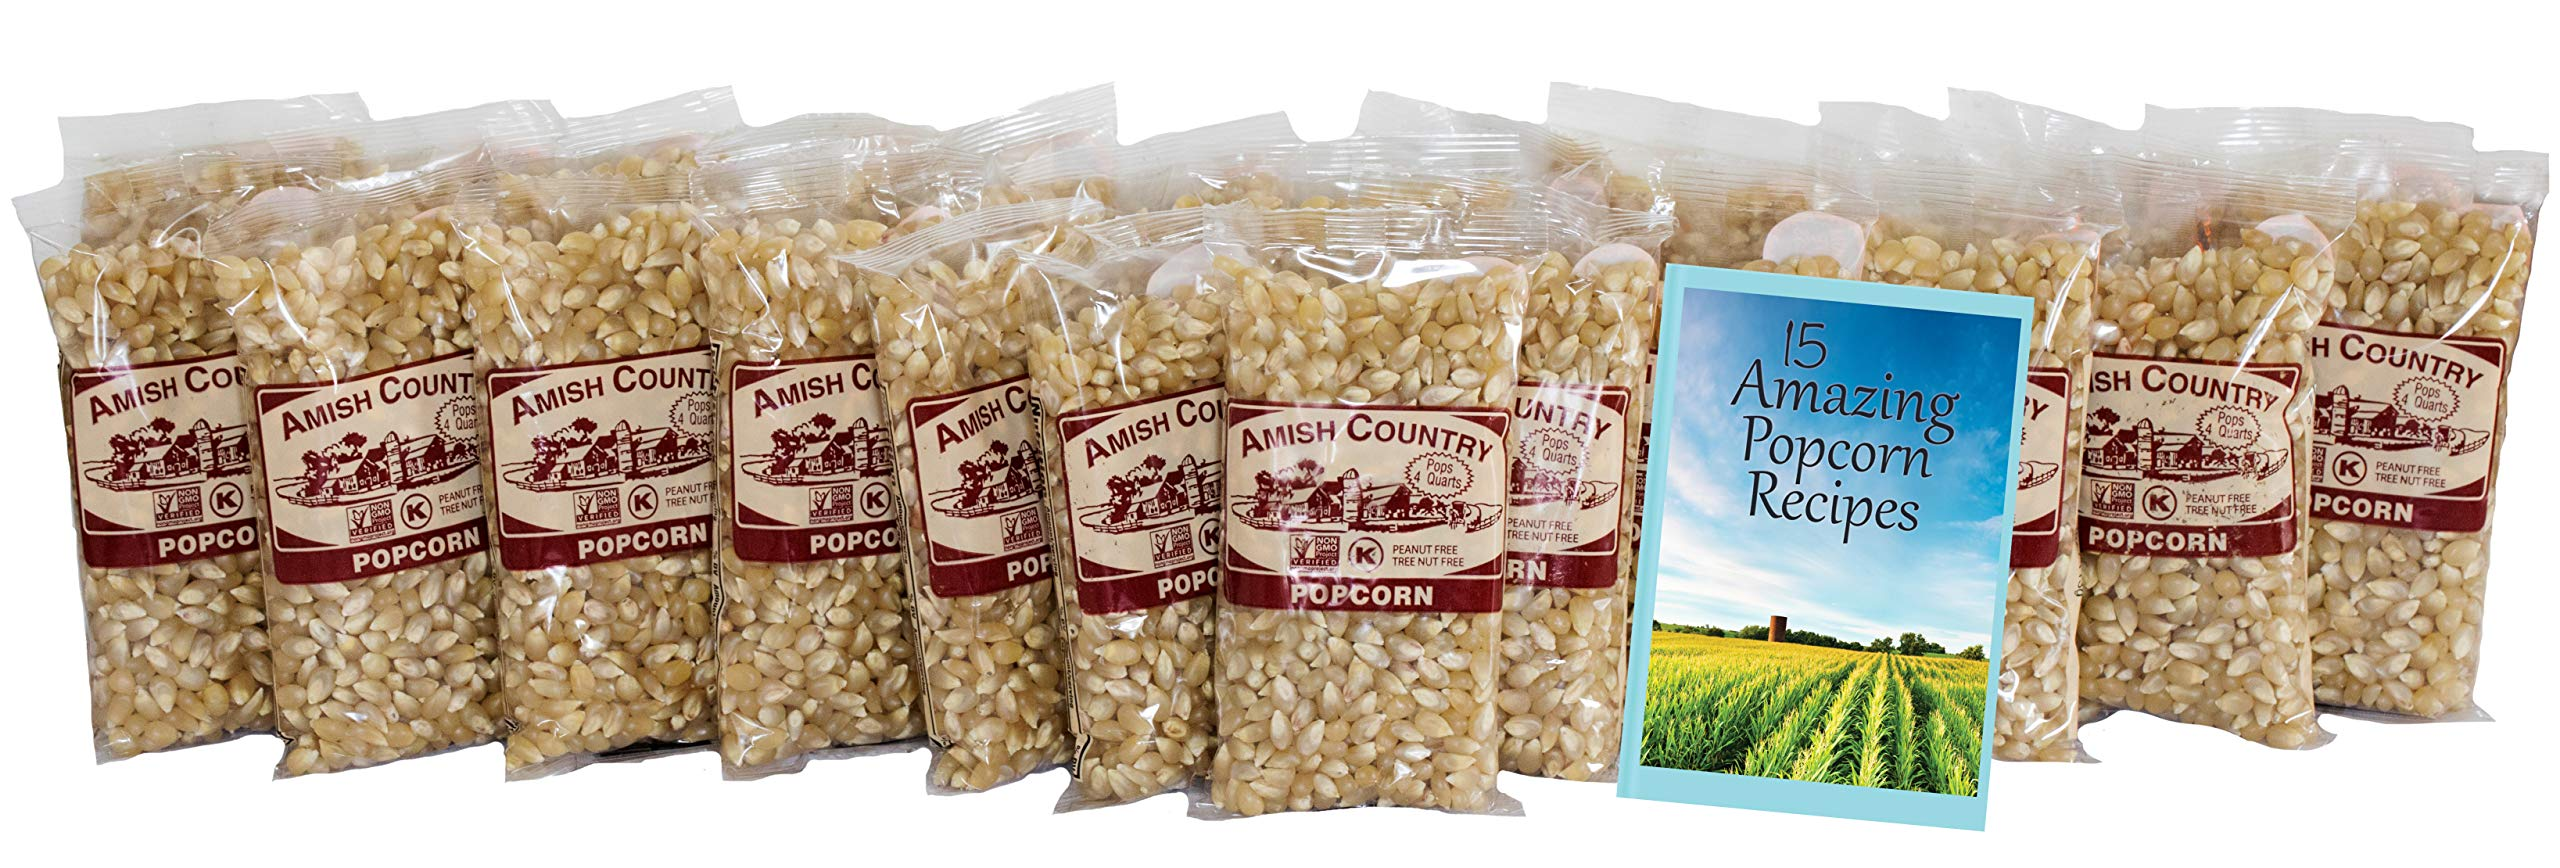 Amish Country Popcorn - Medium White Popcorn (4 Ounce - 24 Pack) Bags - Old Fashioned, Non GMO, and Gluten Free - with Recipe Guide by Amish Country Popcorn (Image #2)